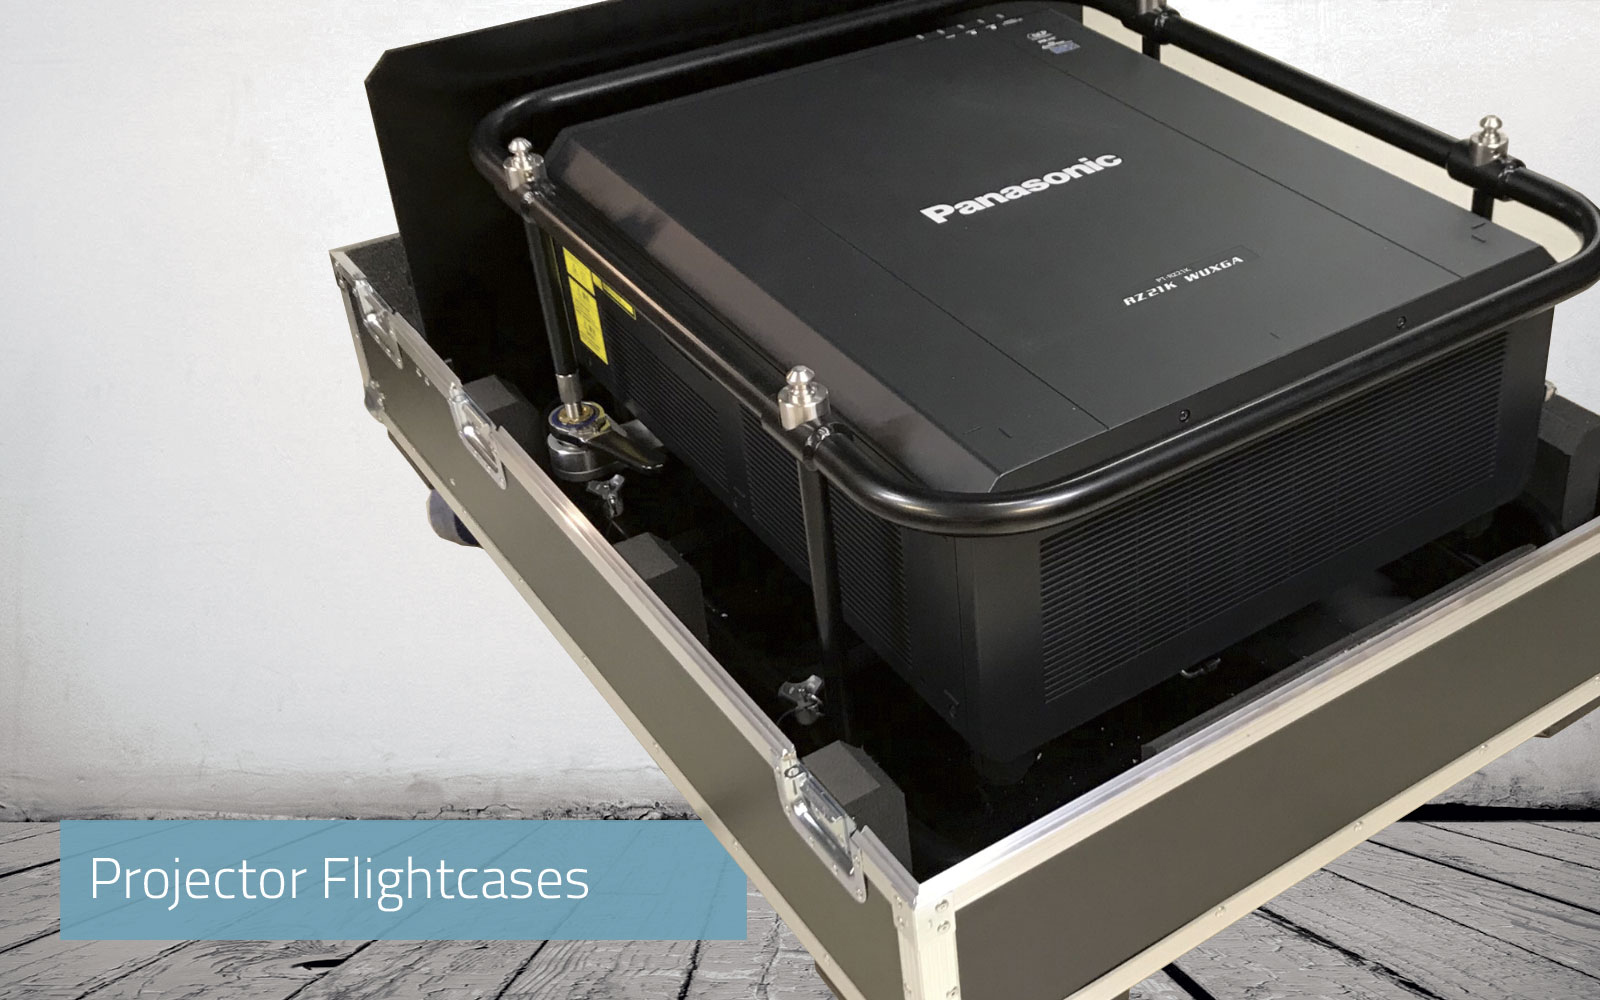 Projector Flightcases